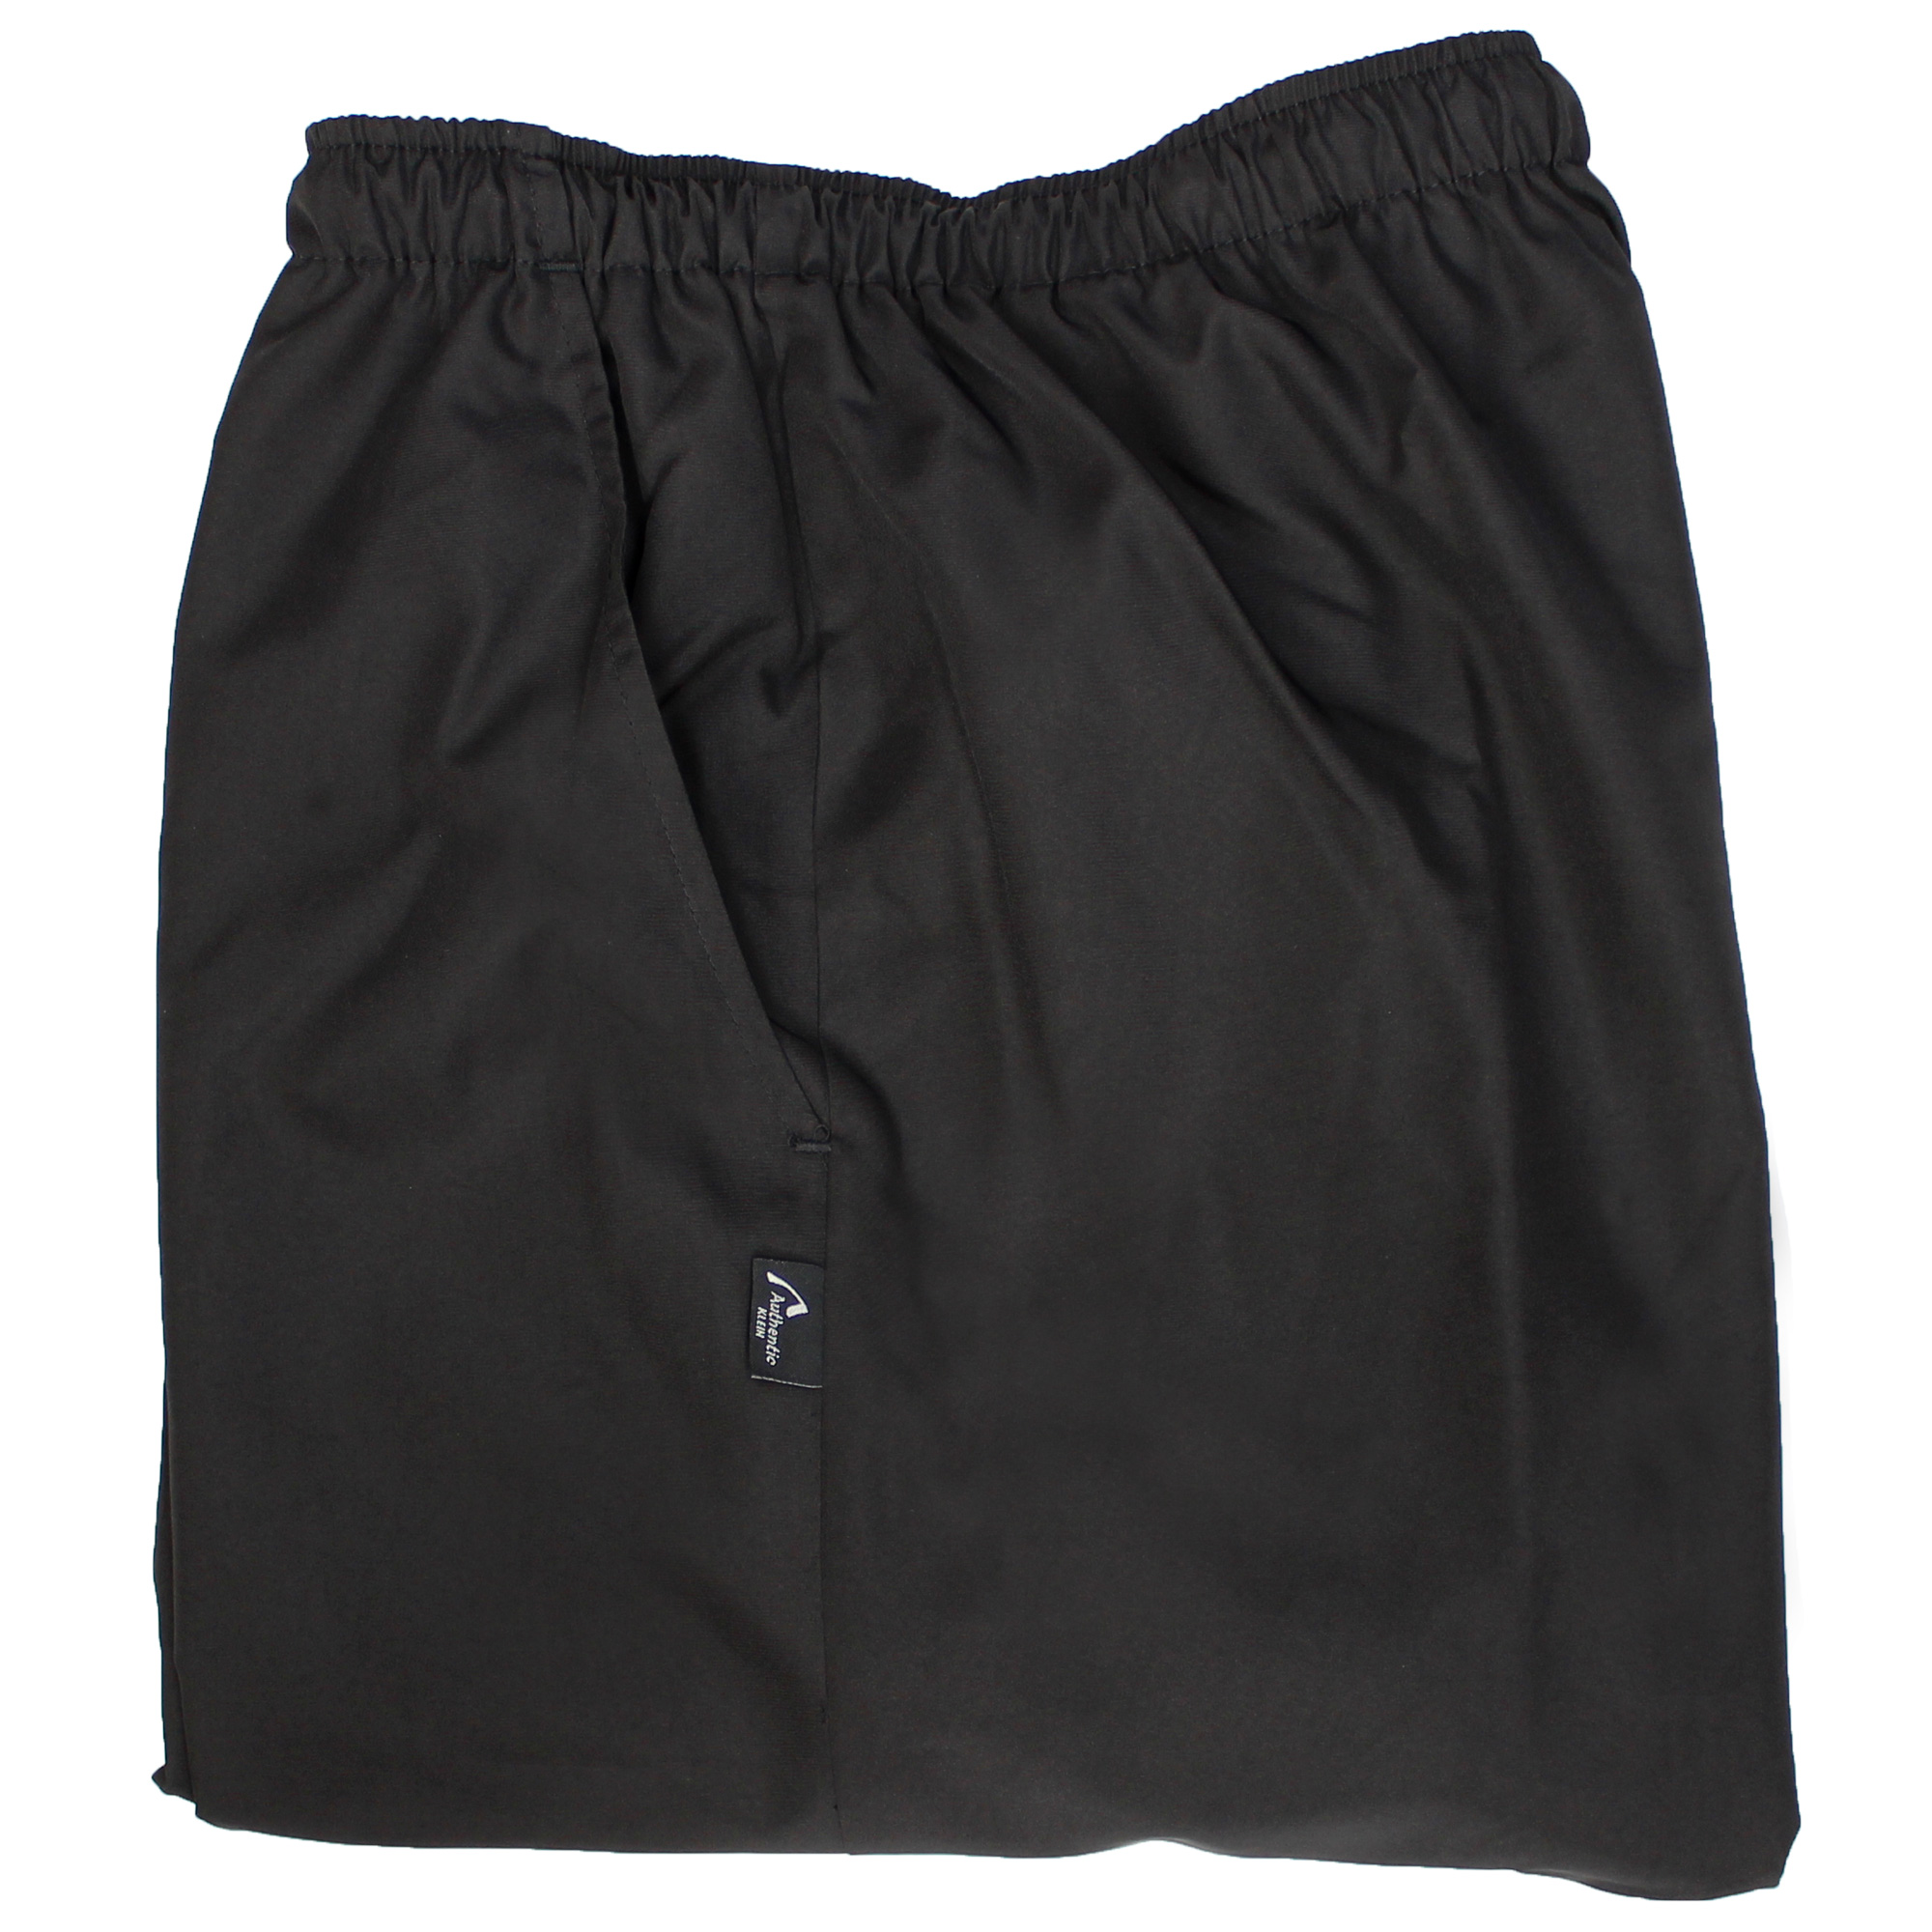 332a225f85ed05 Authentic Klein Microfaser-Jogginghose extra lang - schwarz